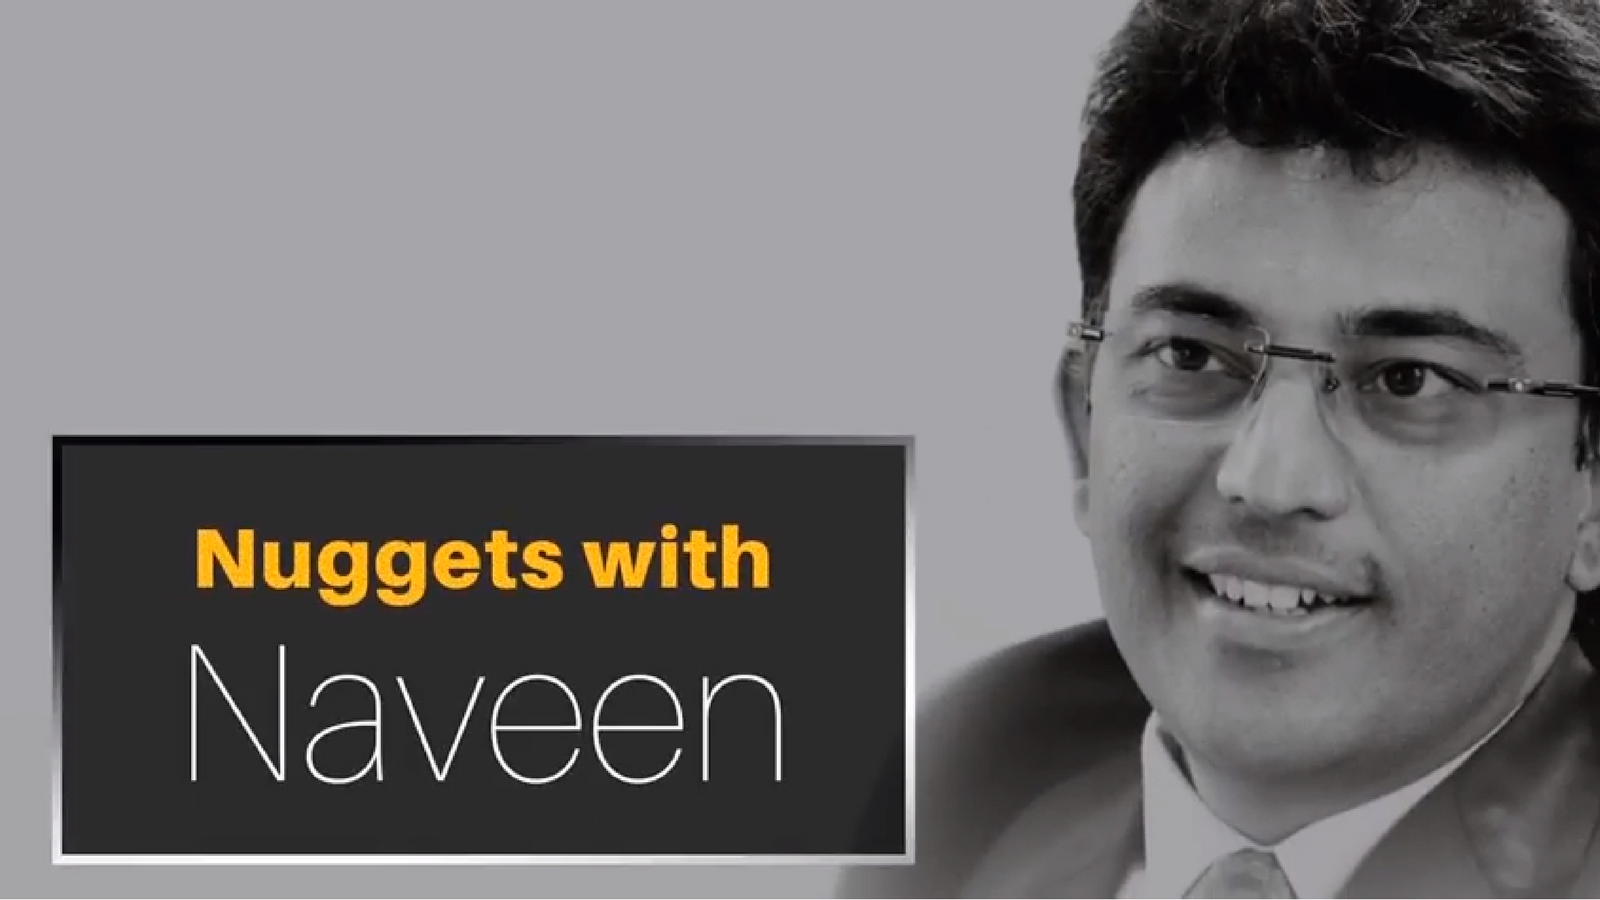 Nuggets with Naveen